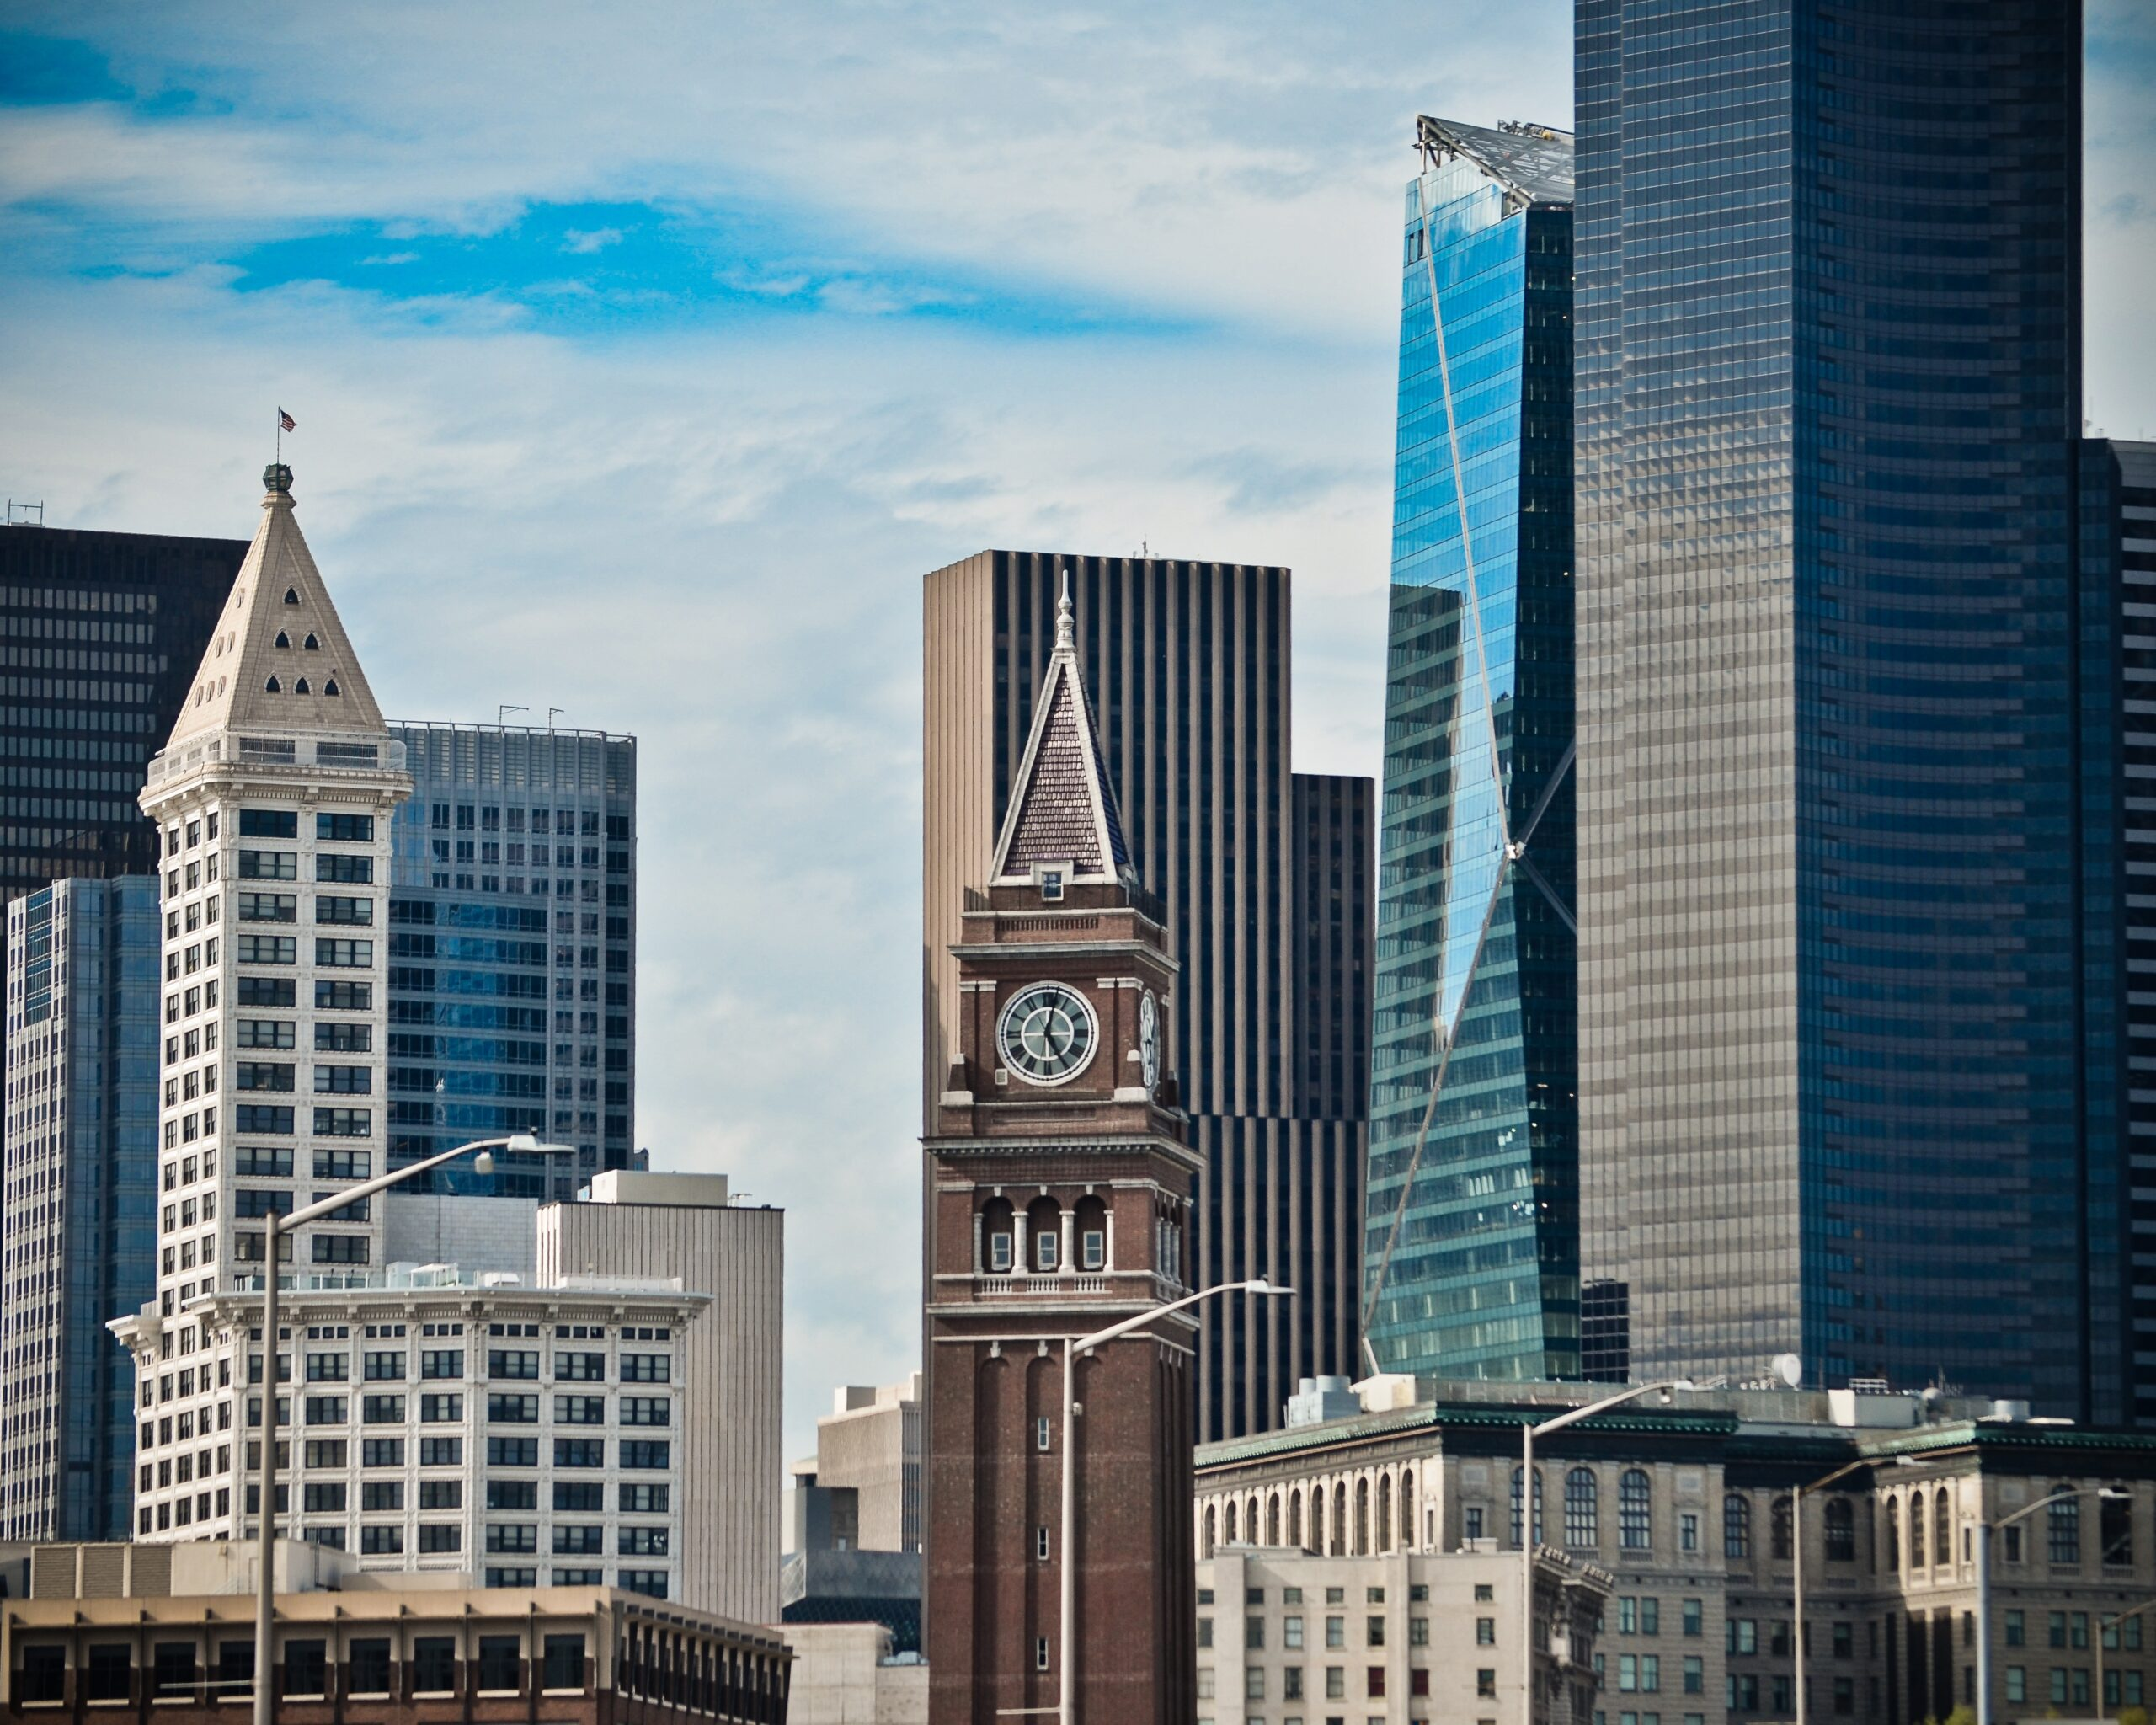 A photo of Seattle buildings in the International District and Pioneer Square, including Smith Tower and the clock tower at King Street Station.